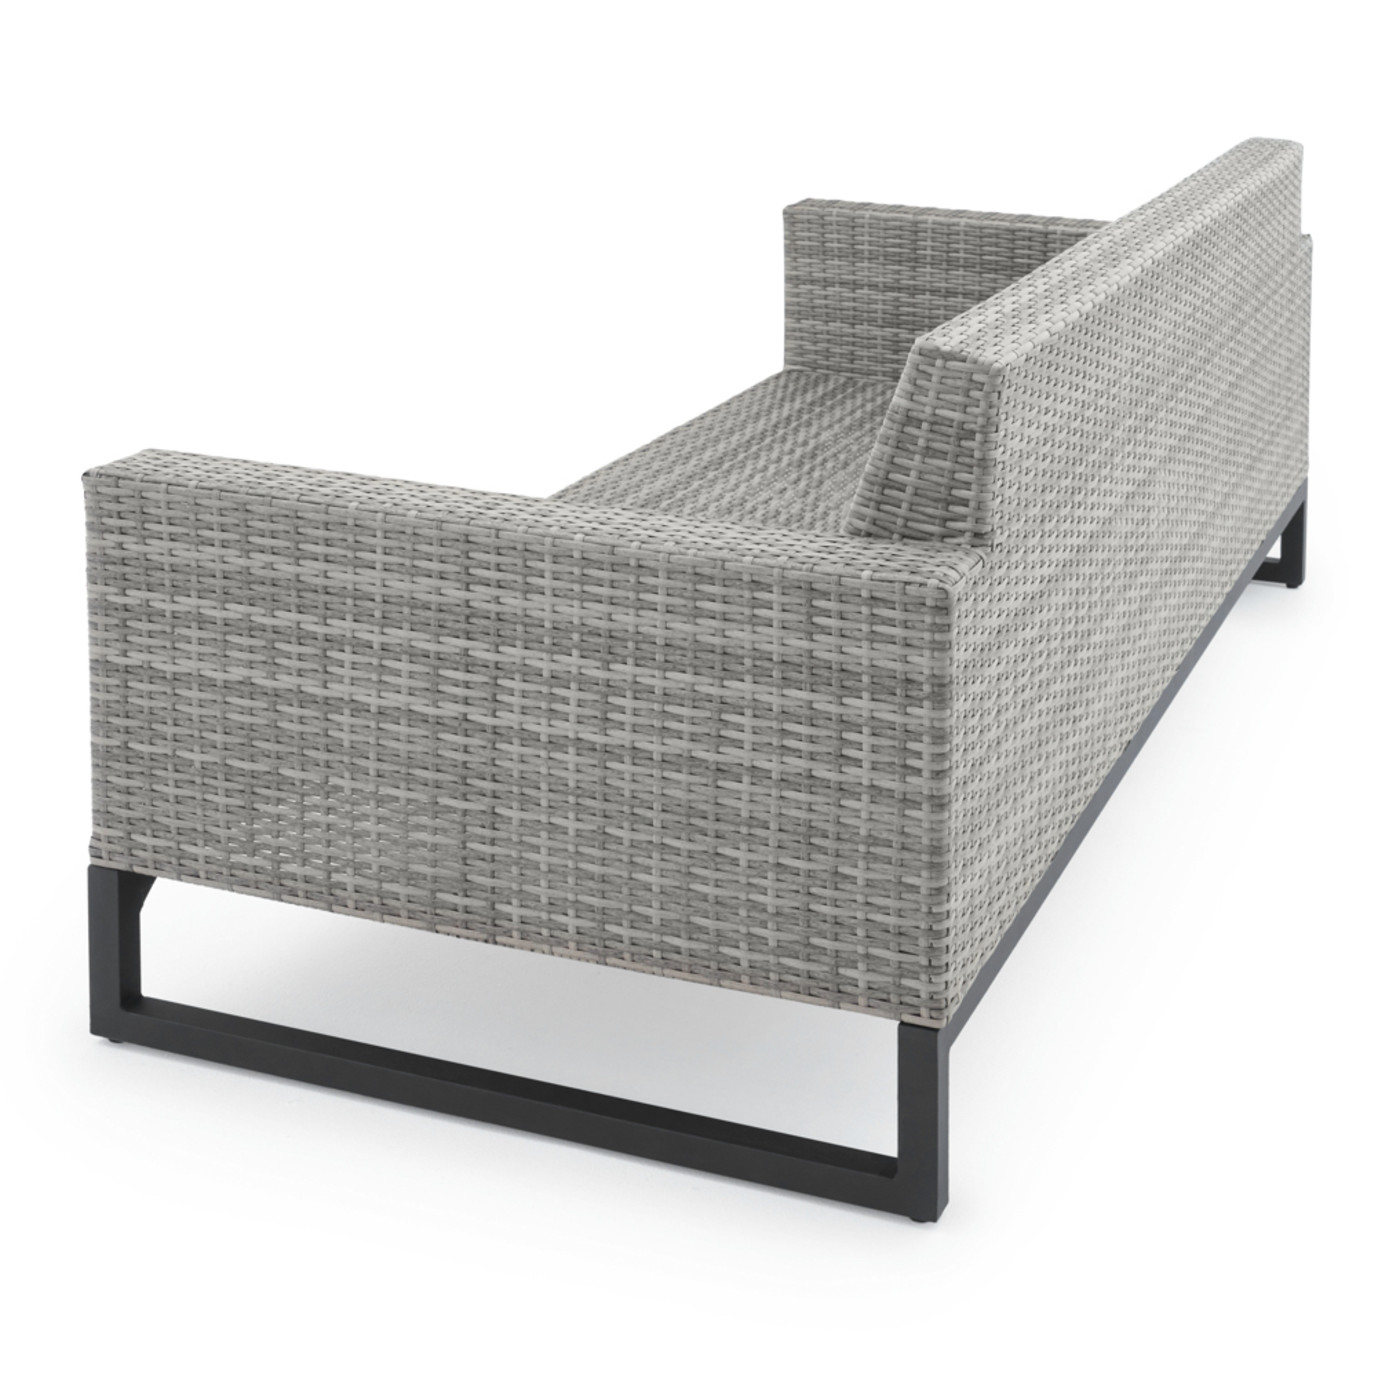 Milo™ Gray 4 Piece Seating Set - Slate Gray